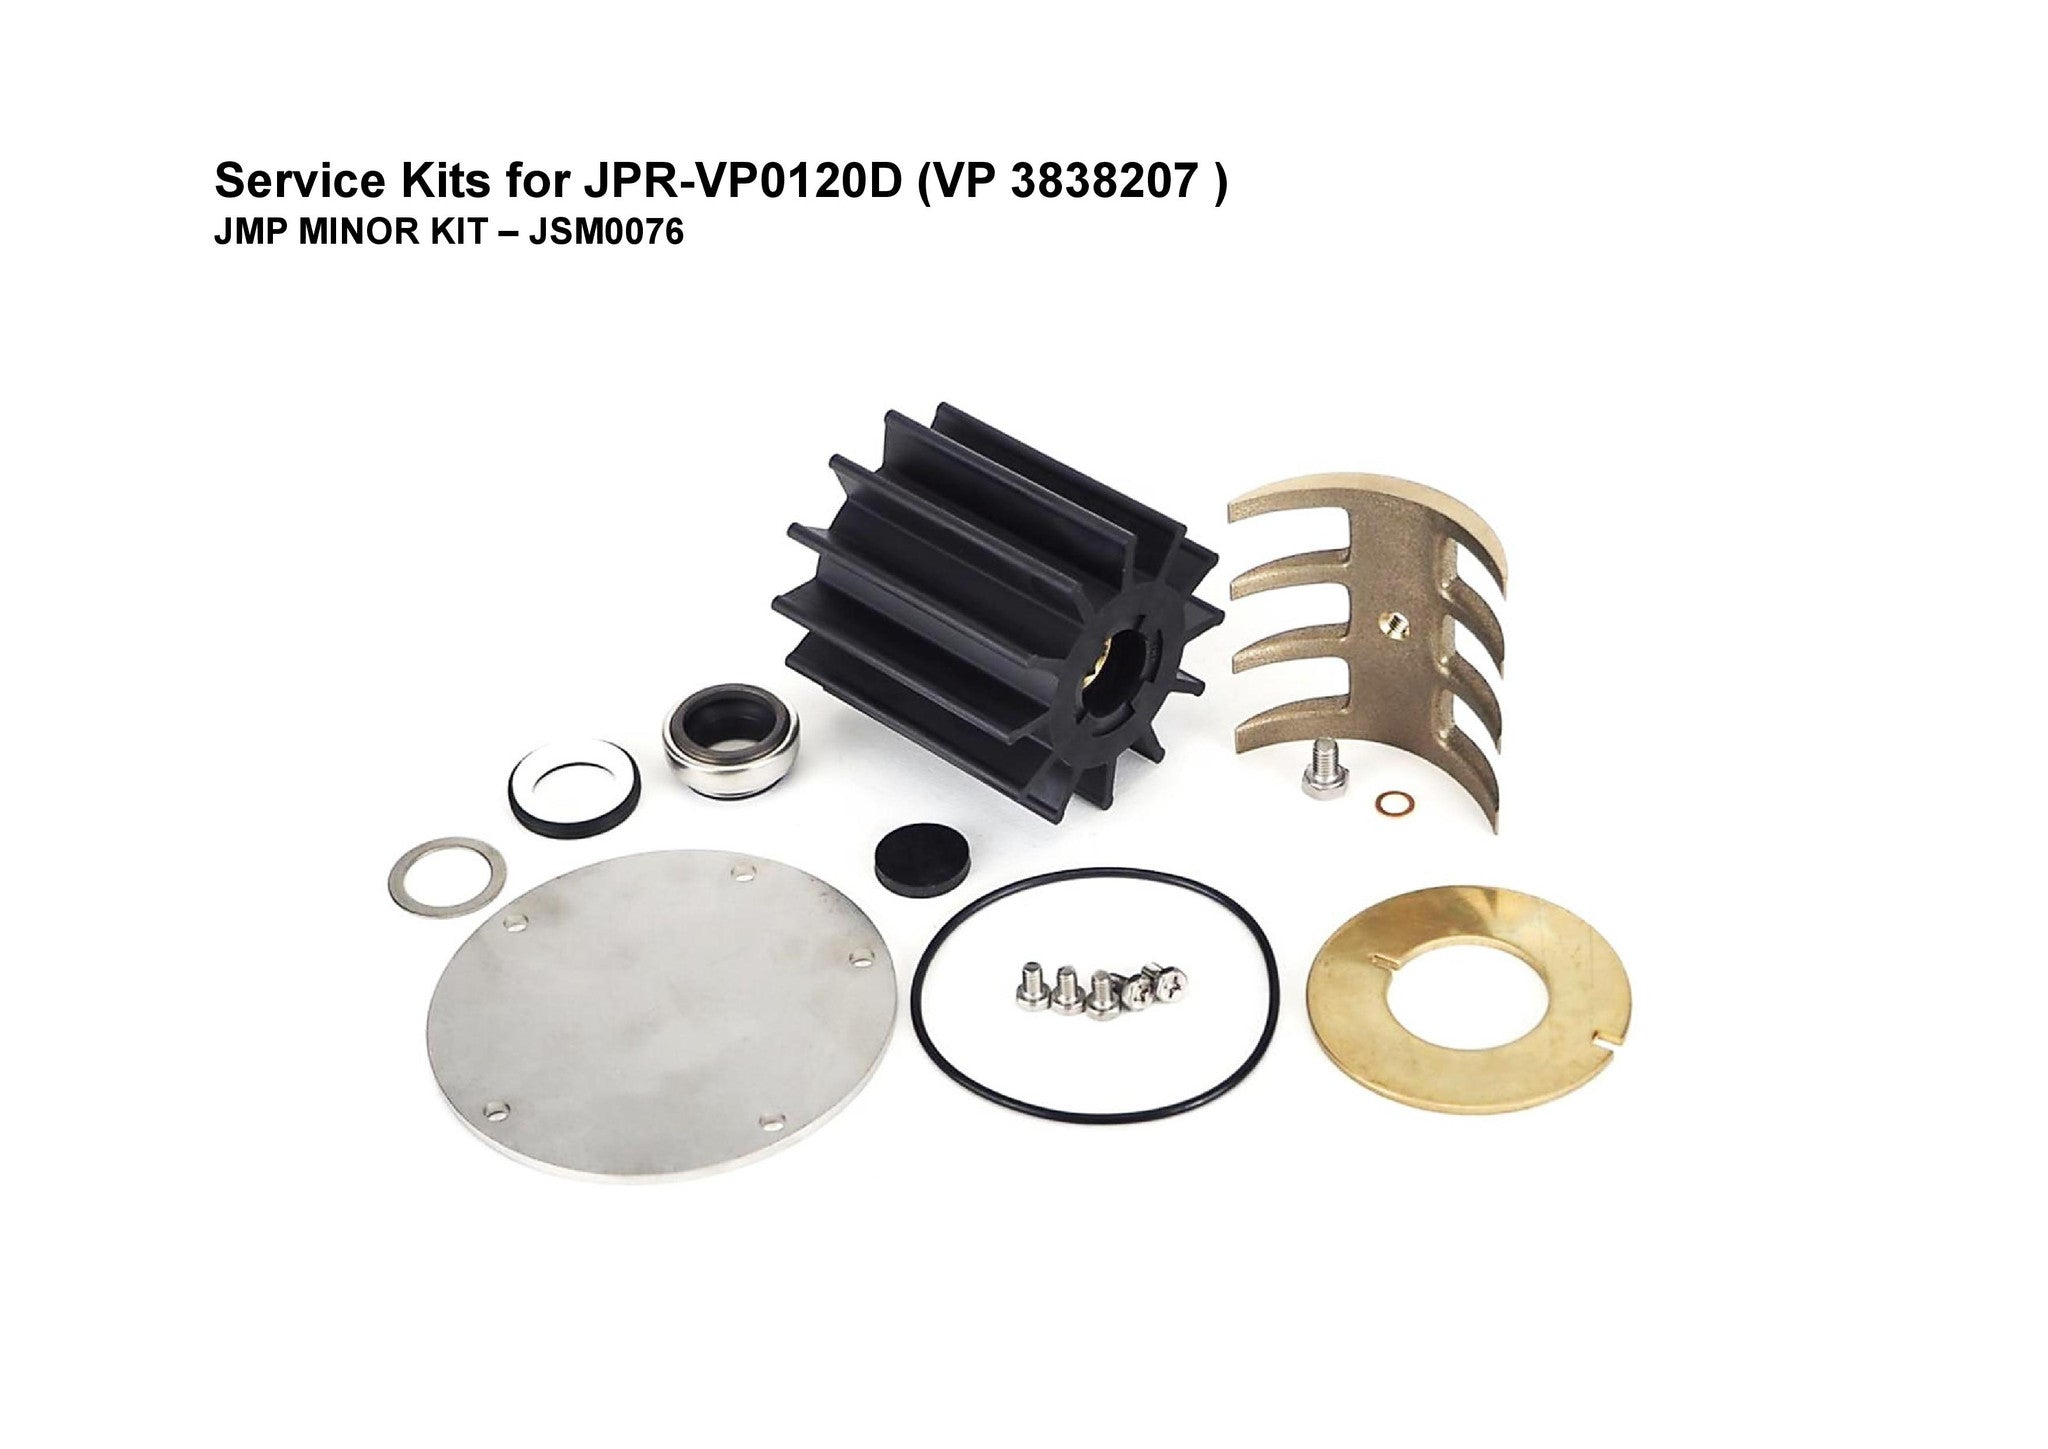 JSM0076 - Minor service Kit for Volvo Penta D12/13/16 Engines seawater pumps (Fits Volvo Penta Engines: D12C/D)